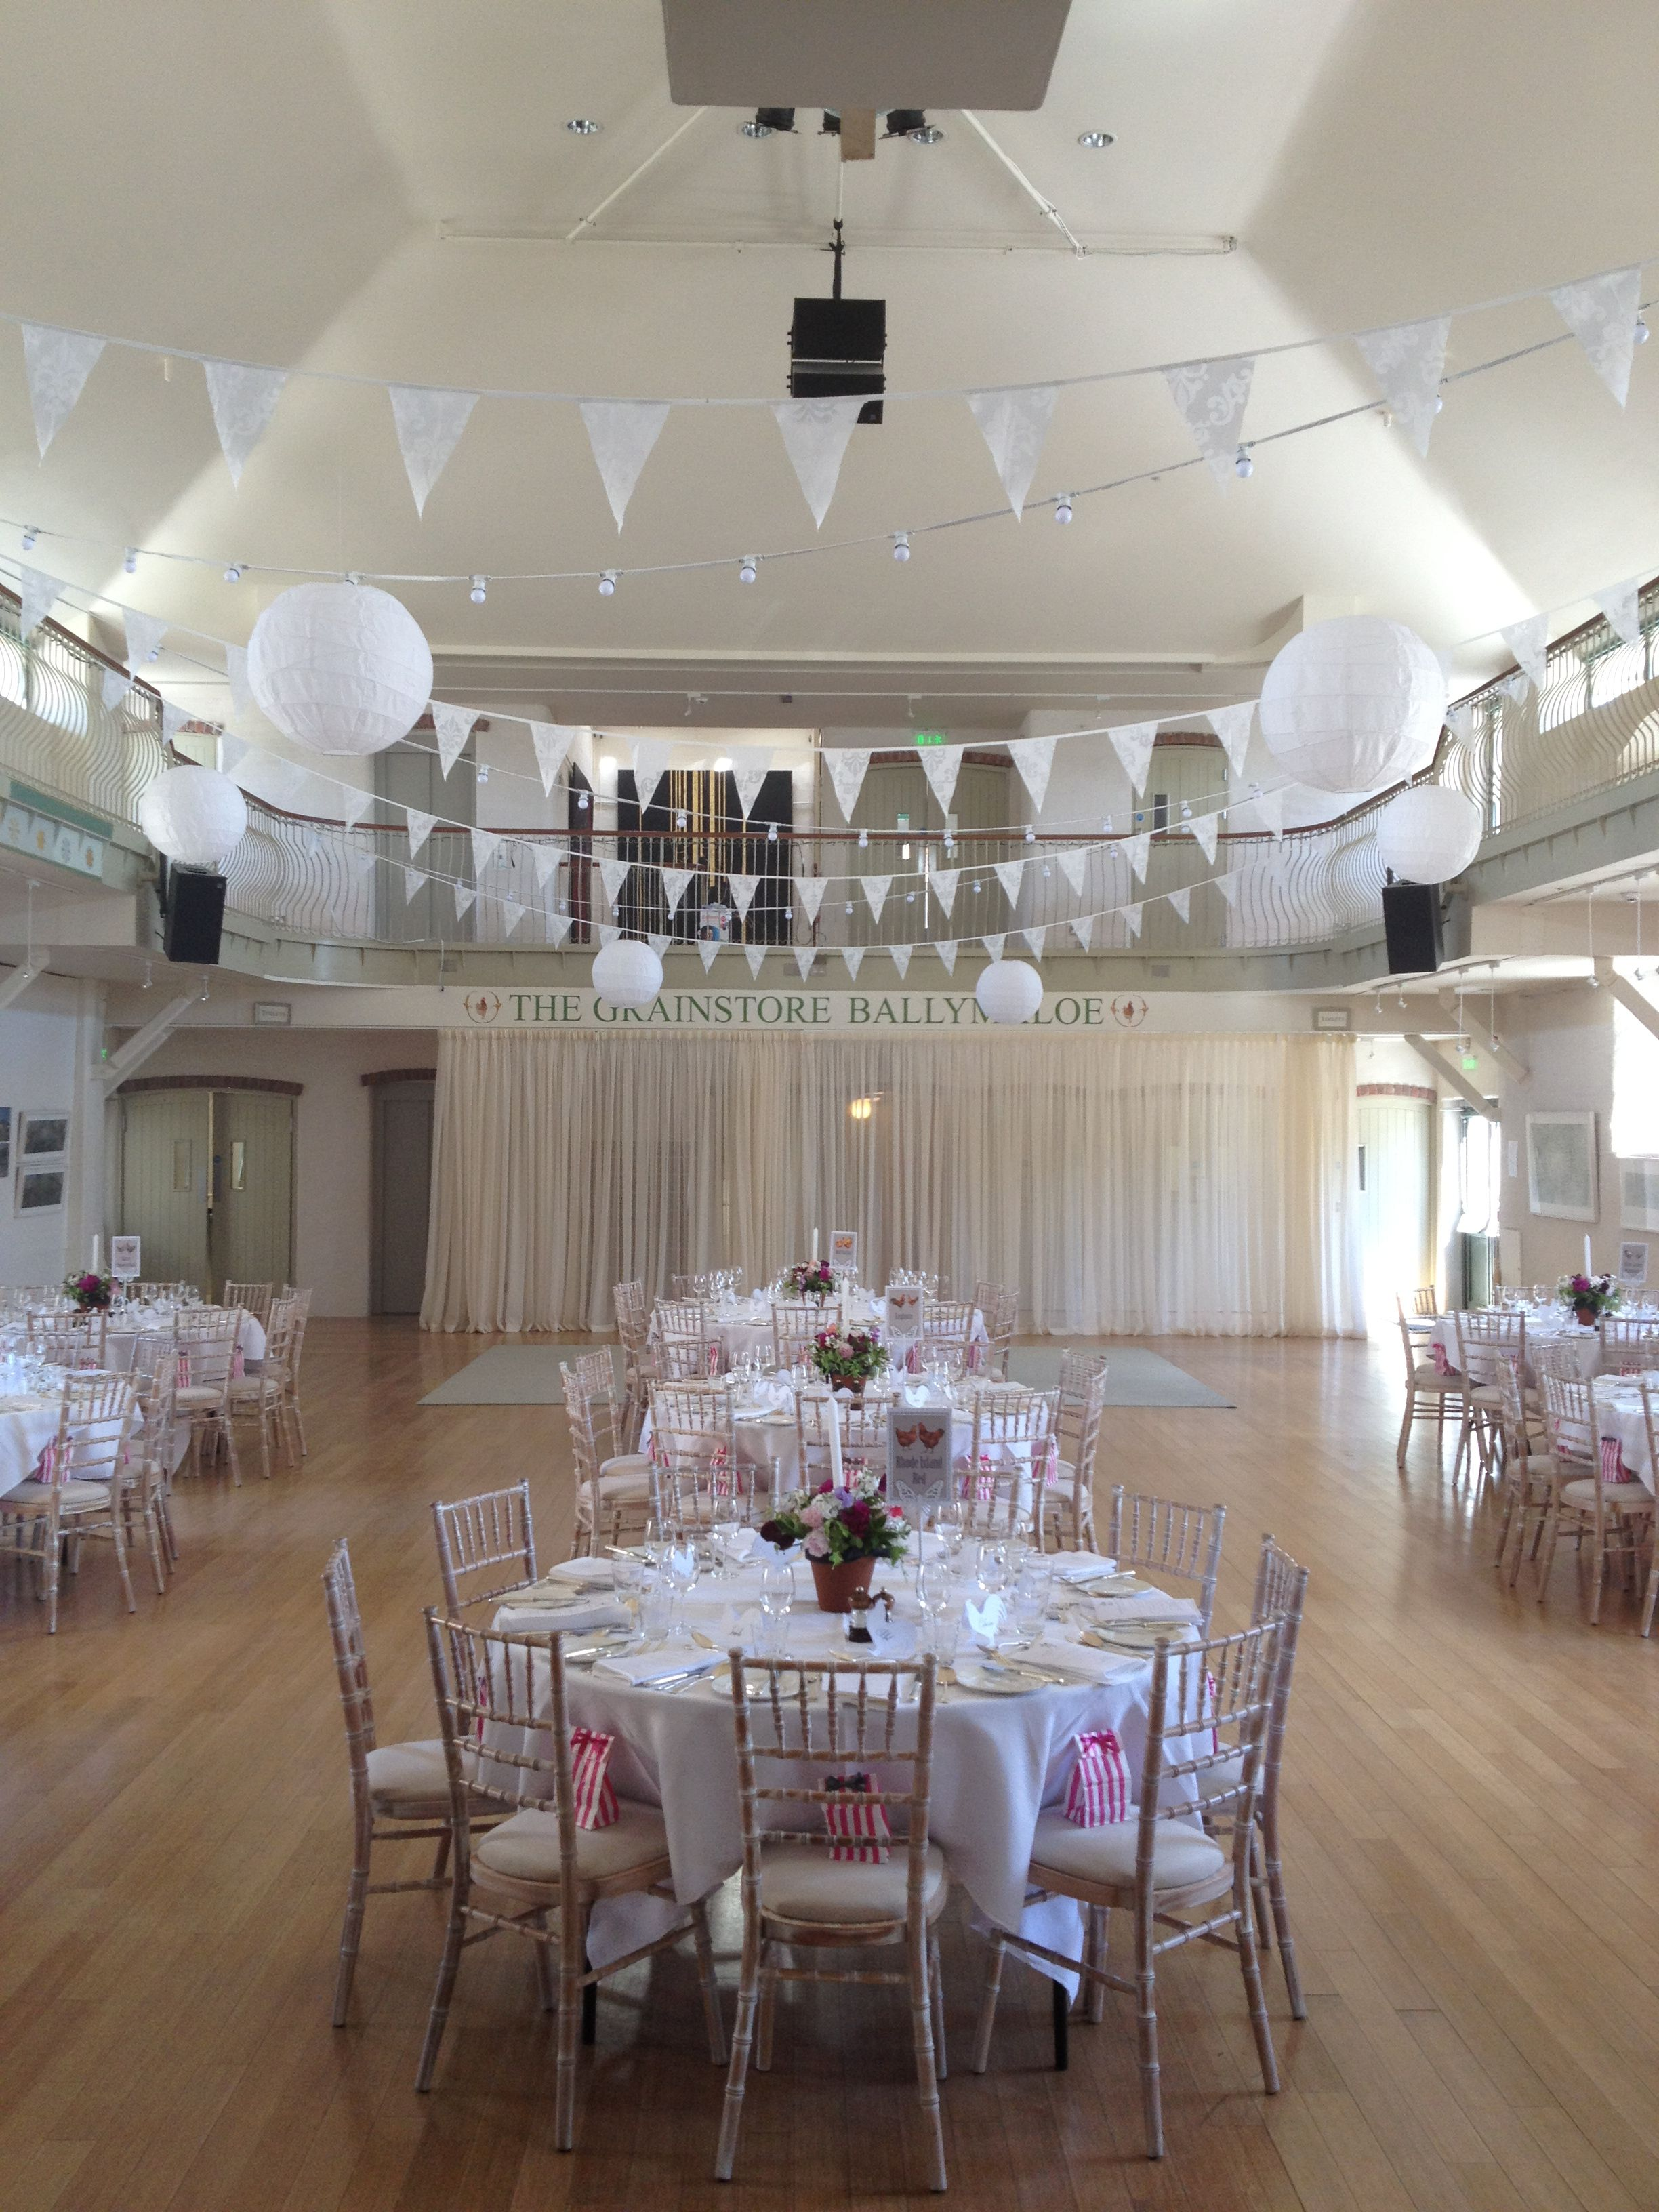 Wedding room decoration ideas  Decorating Ideas for a wedding  I love the white bunting from this